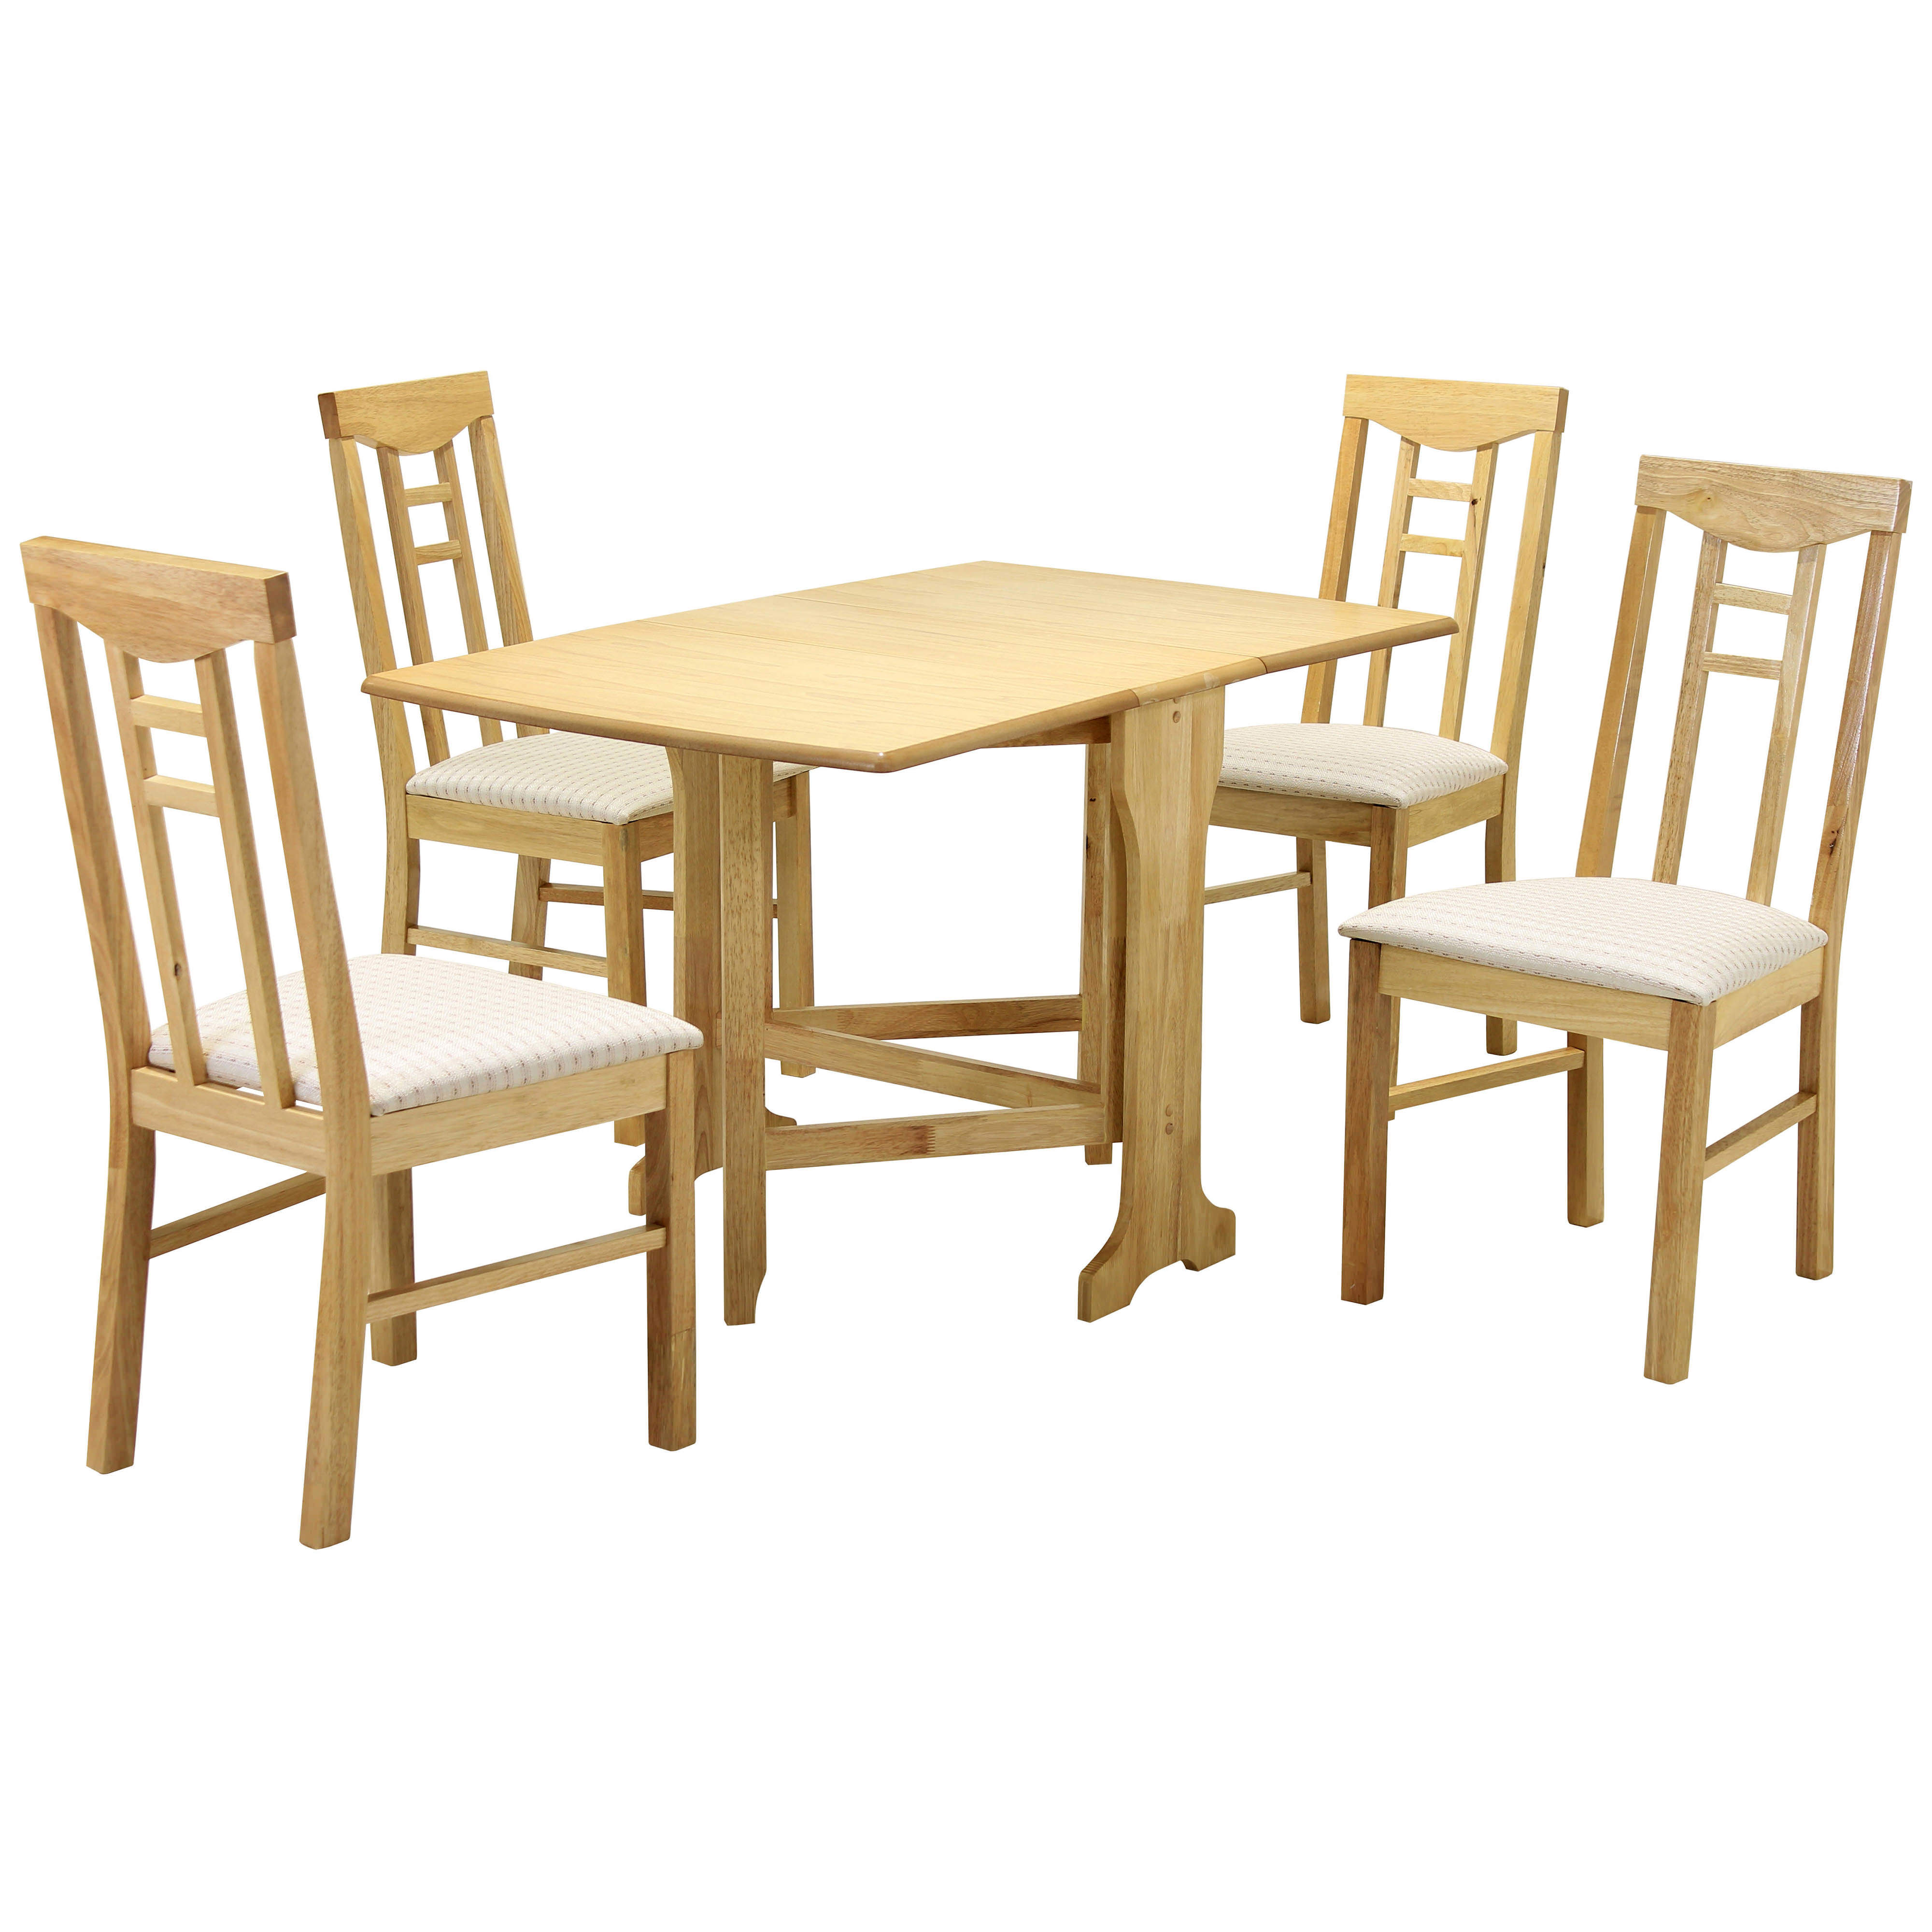 Details About Natural Finish Dining Table And Chair Set With 4 Seats